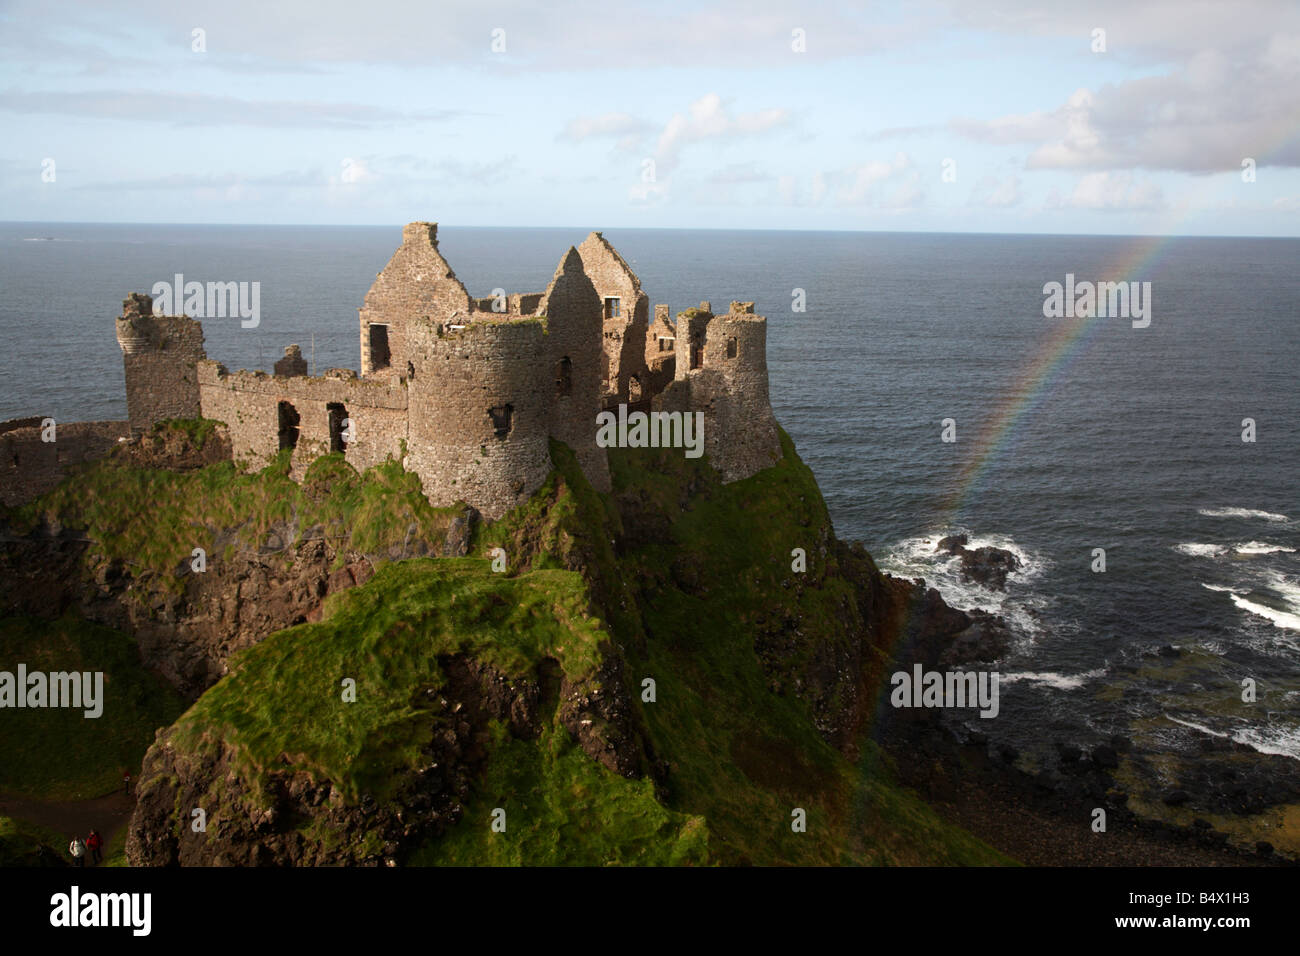 dunluce castle with rainbow and the north antrim coastline county antrim northern ireland uk one the filming locations for game of thrones Stock Photo